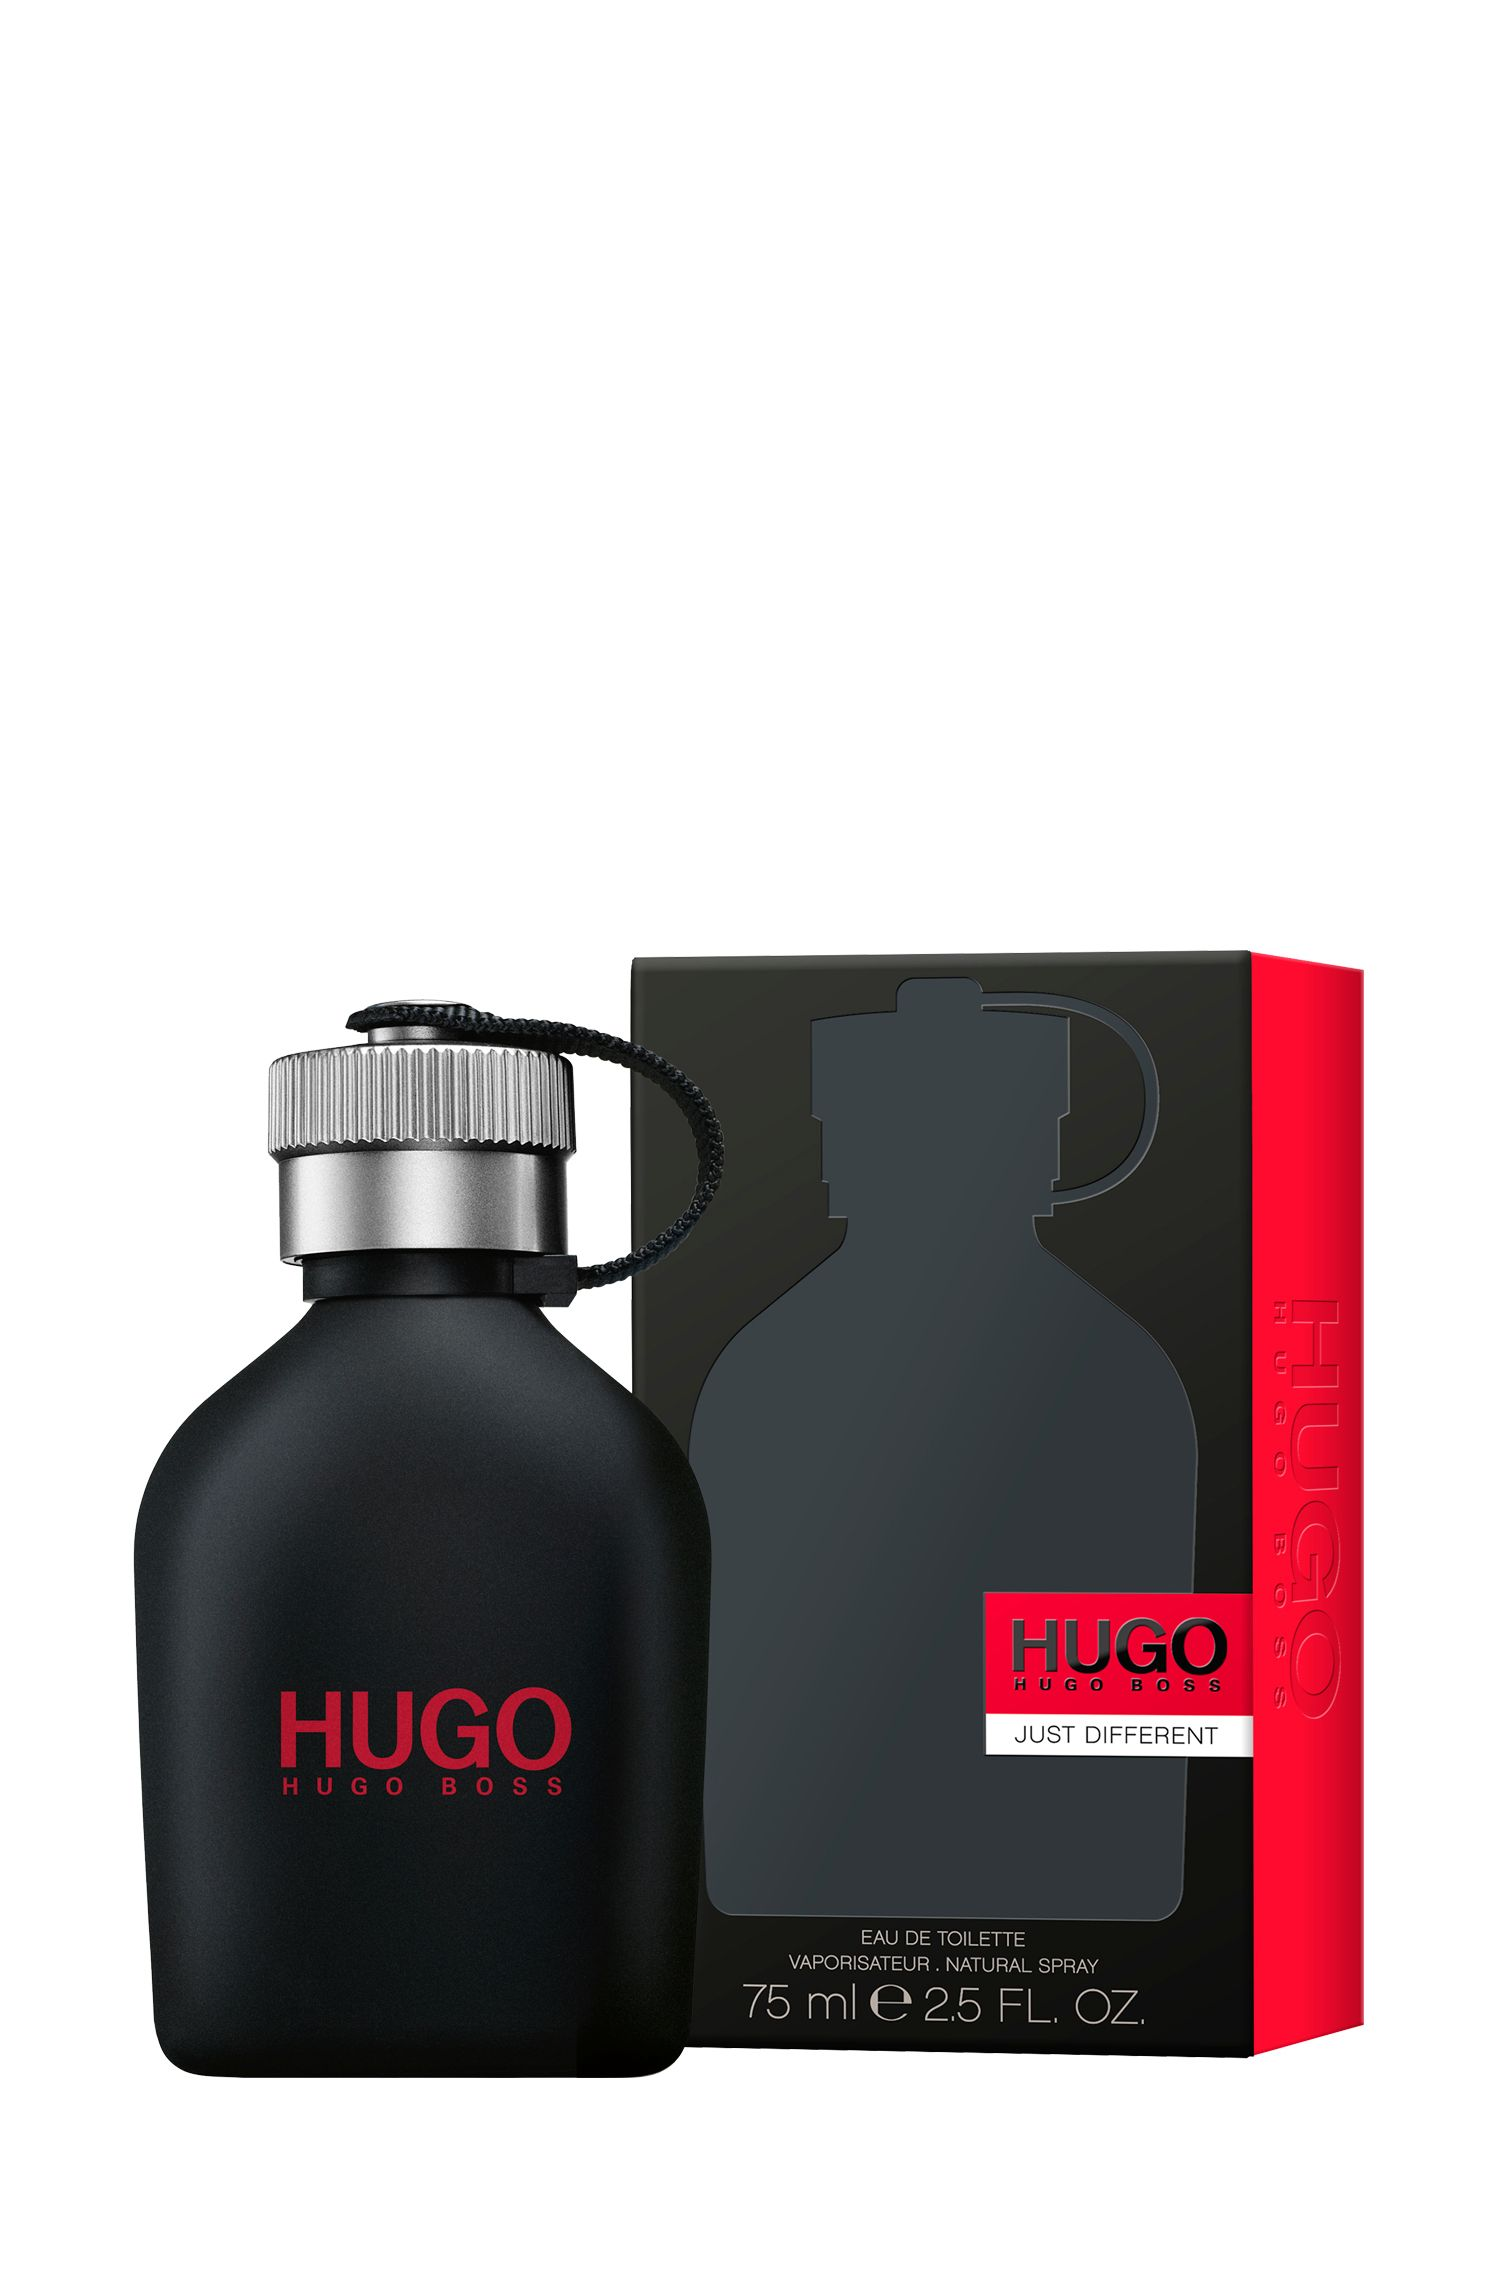 Eau de toilette HUGO Just Different de 75 ml